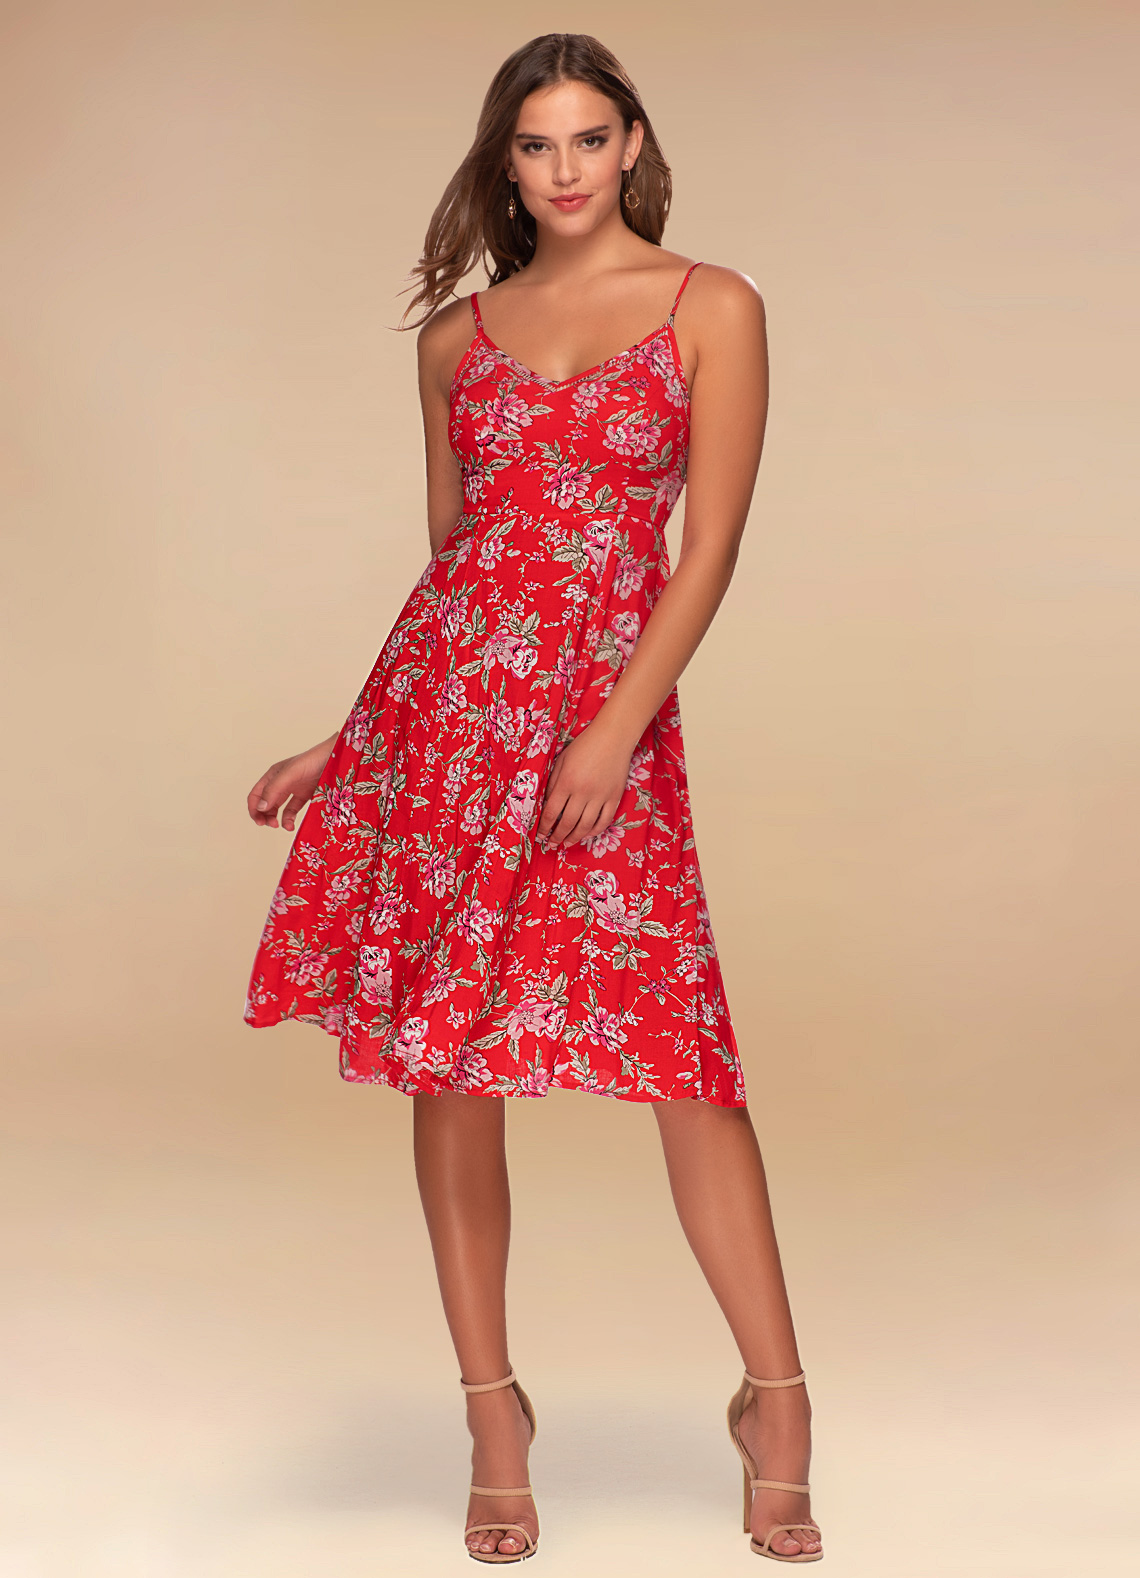 SP Red Floral Print #1.front